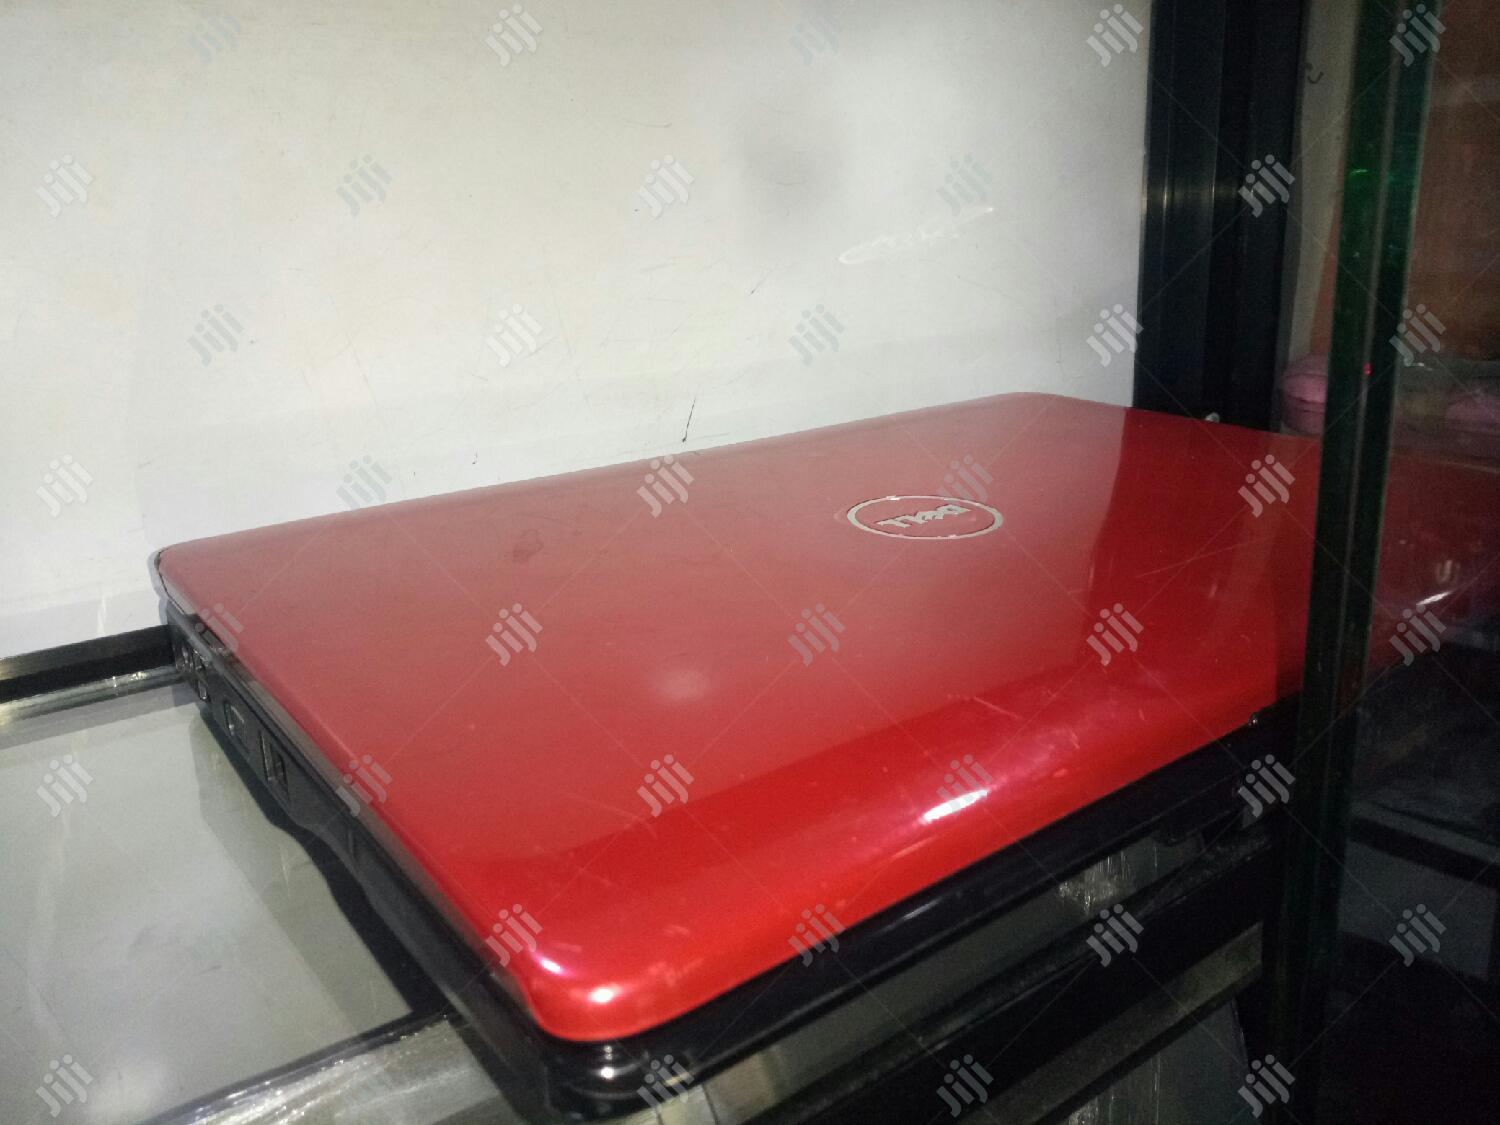 Laptop Dell Inspiron 15 1545 4GB Intel Core 2 Duo HDD 250GB   Laptops & Computers for sale in Port-Harcourt, Rivers State, Nigeria